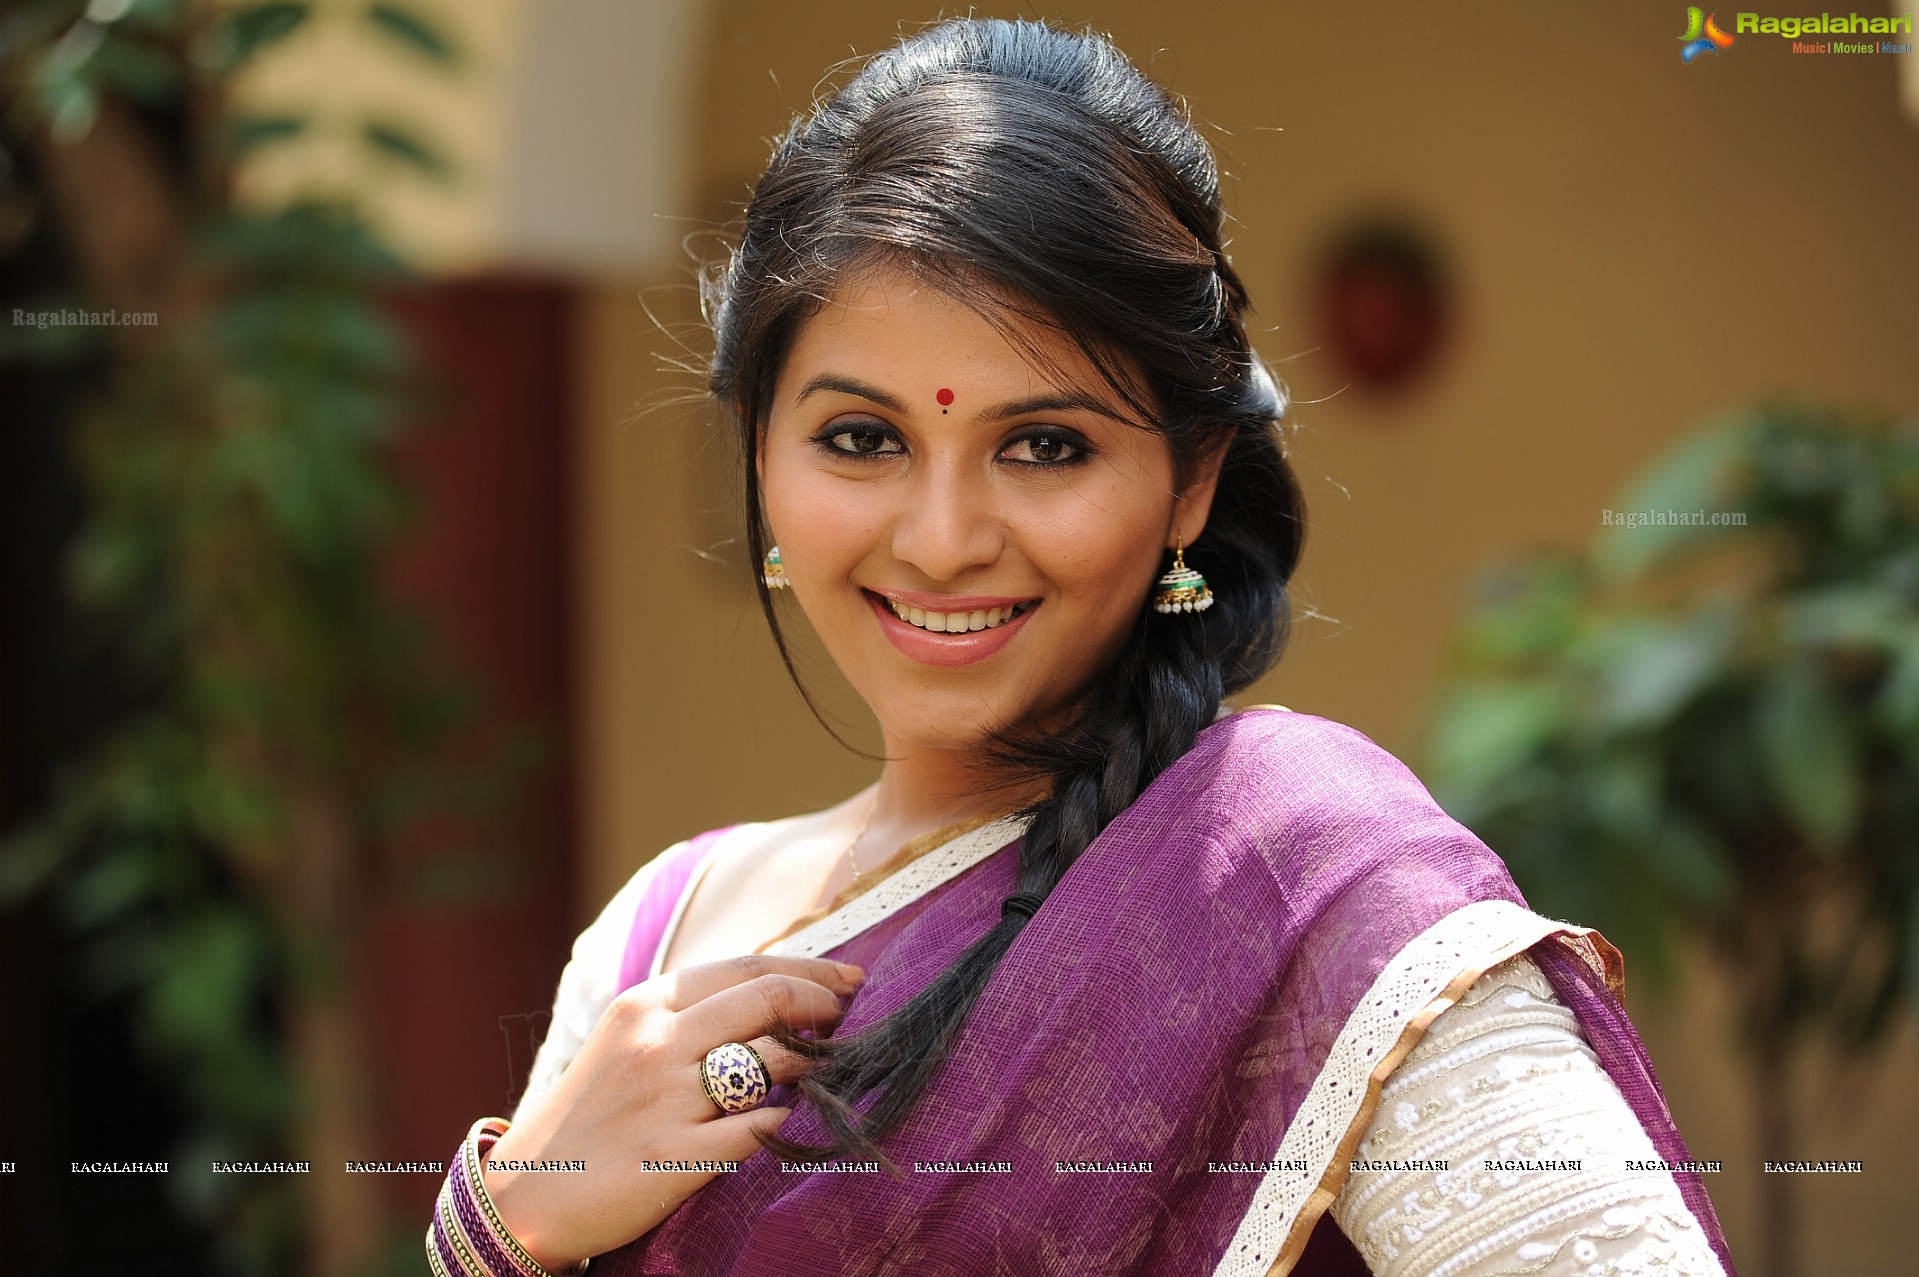 Telugu Actors Hd Wallpapers 53 Wallpapers: Anjali (High Definition) Image 2